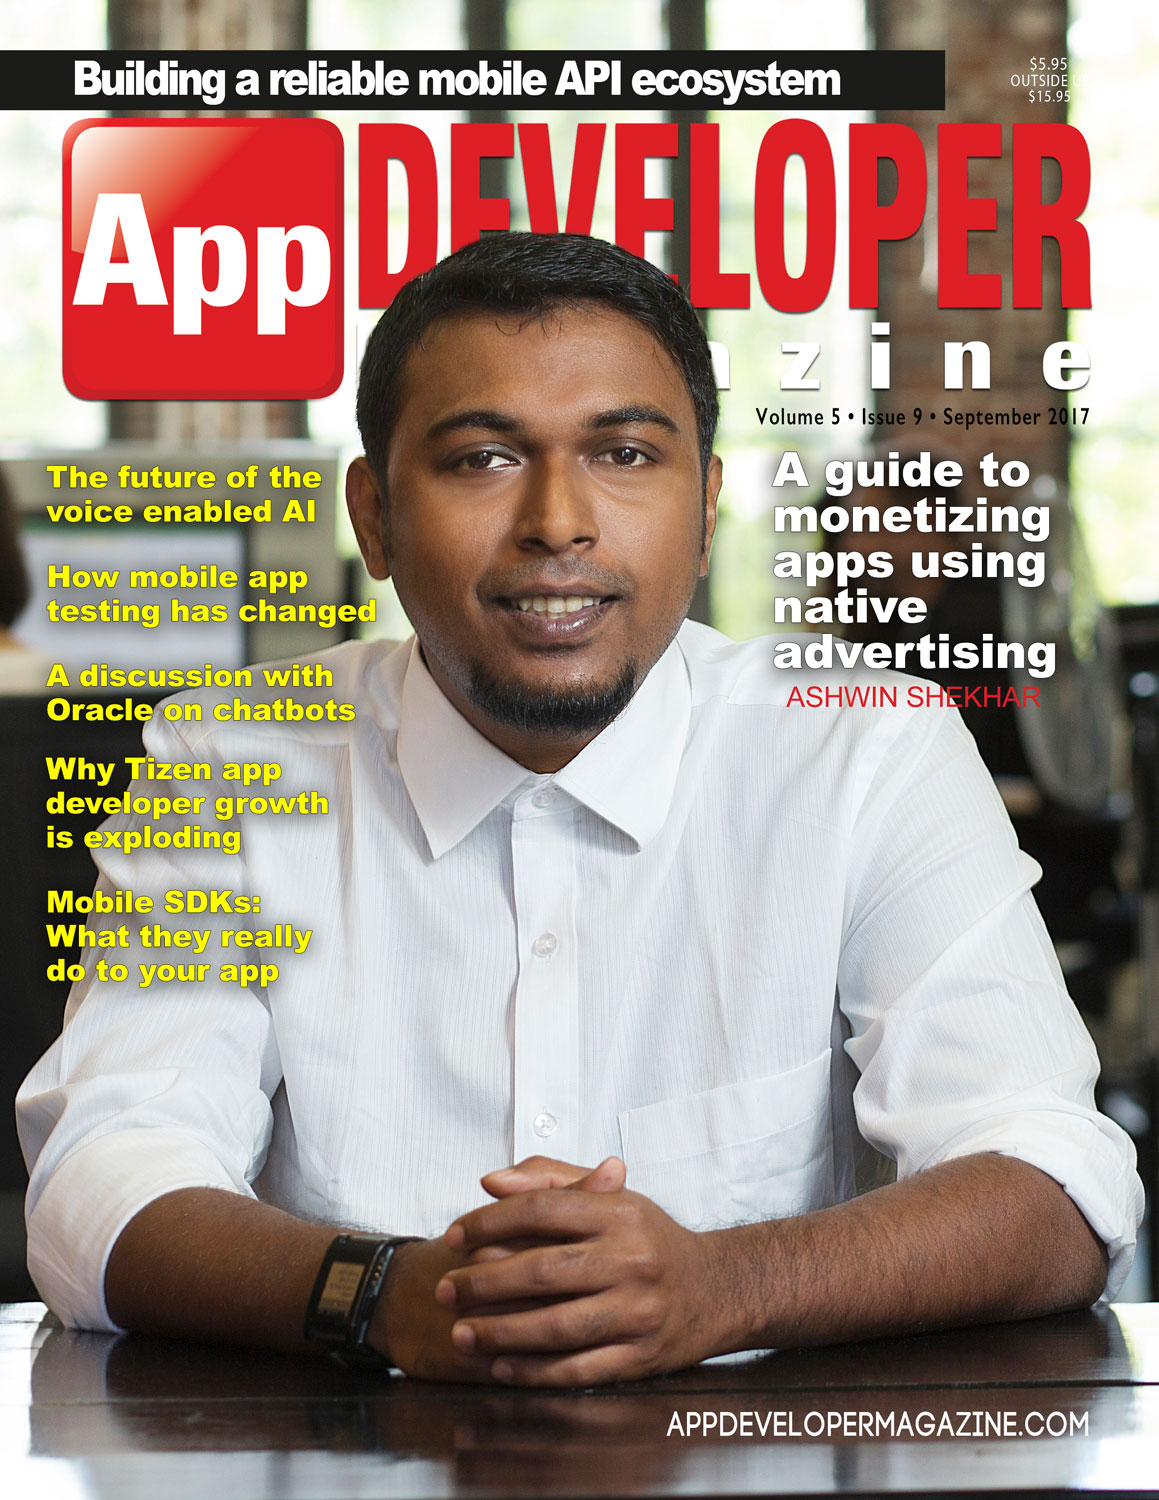 App Developer Magazine September-2017 for Apple and Android mobile app developers